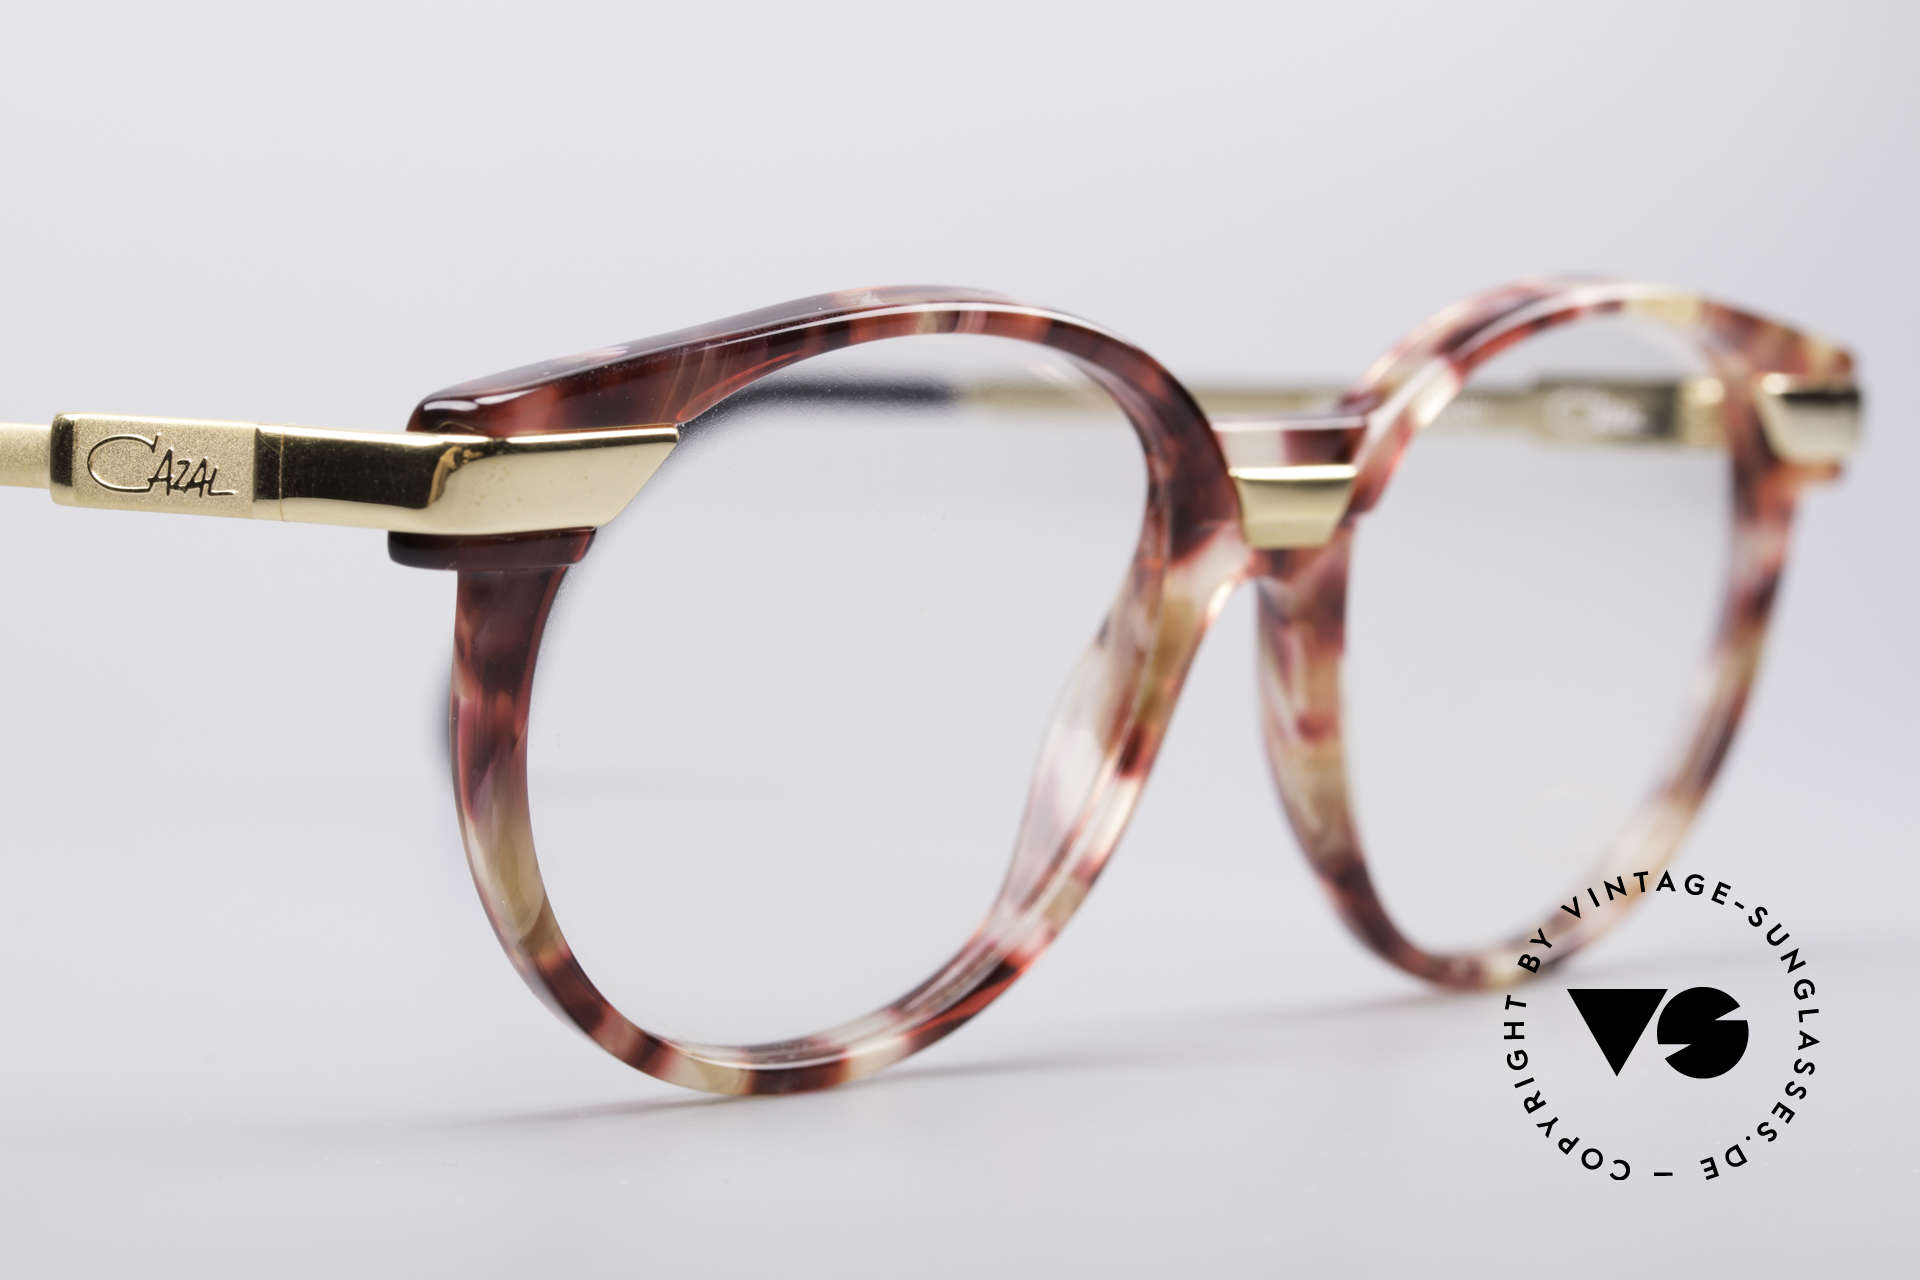 Cazal 338 Small Round Vintage Frame, NO retro eyeglasses, but an app. 25 years old original, Made for Men and Women